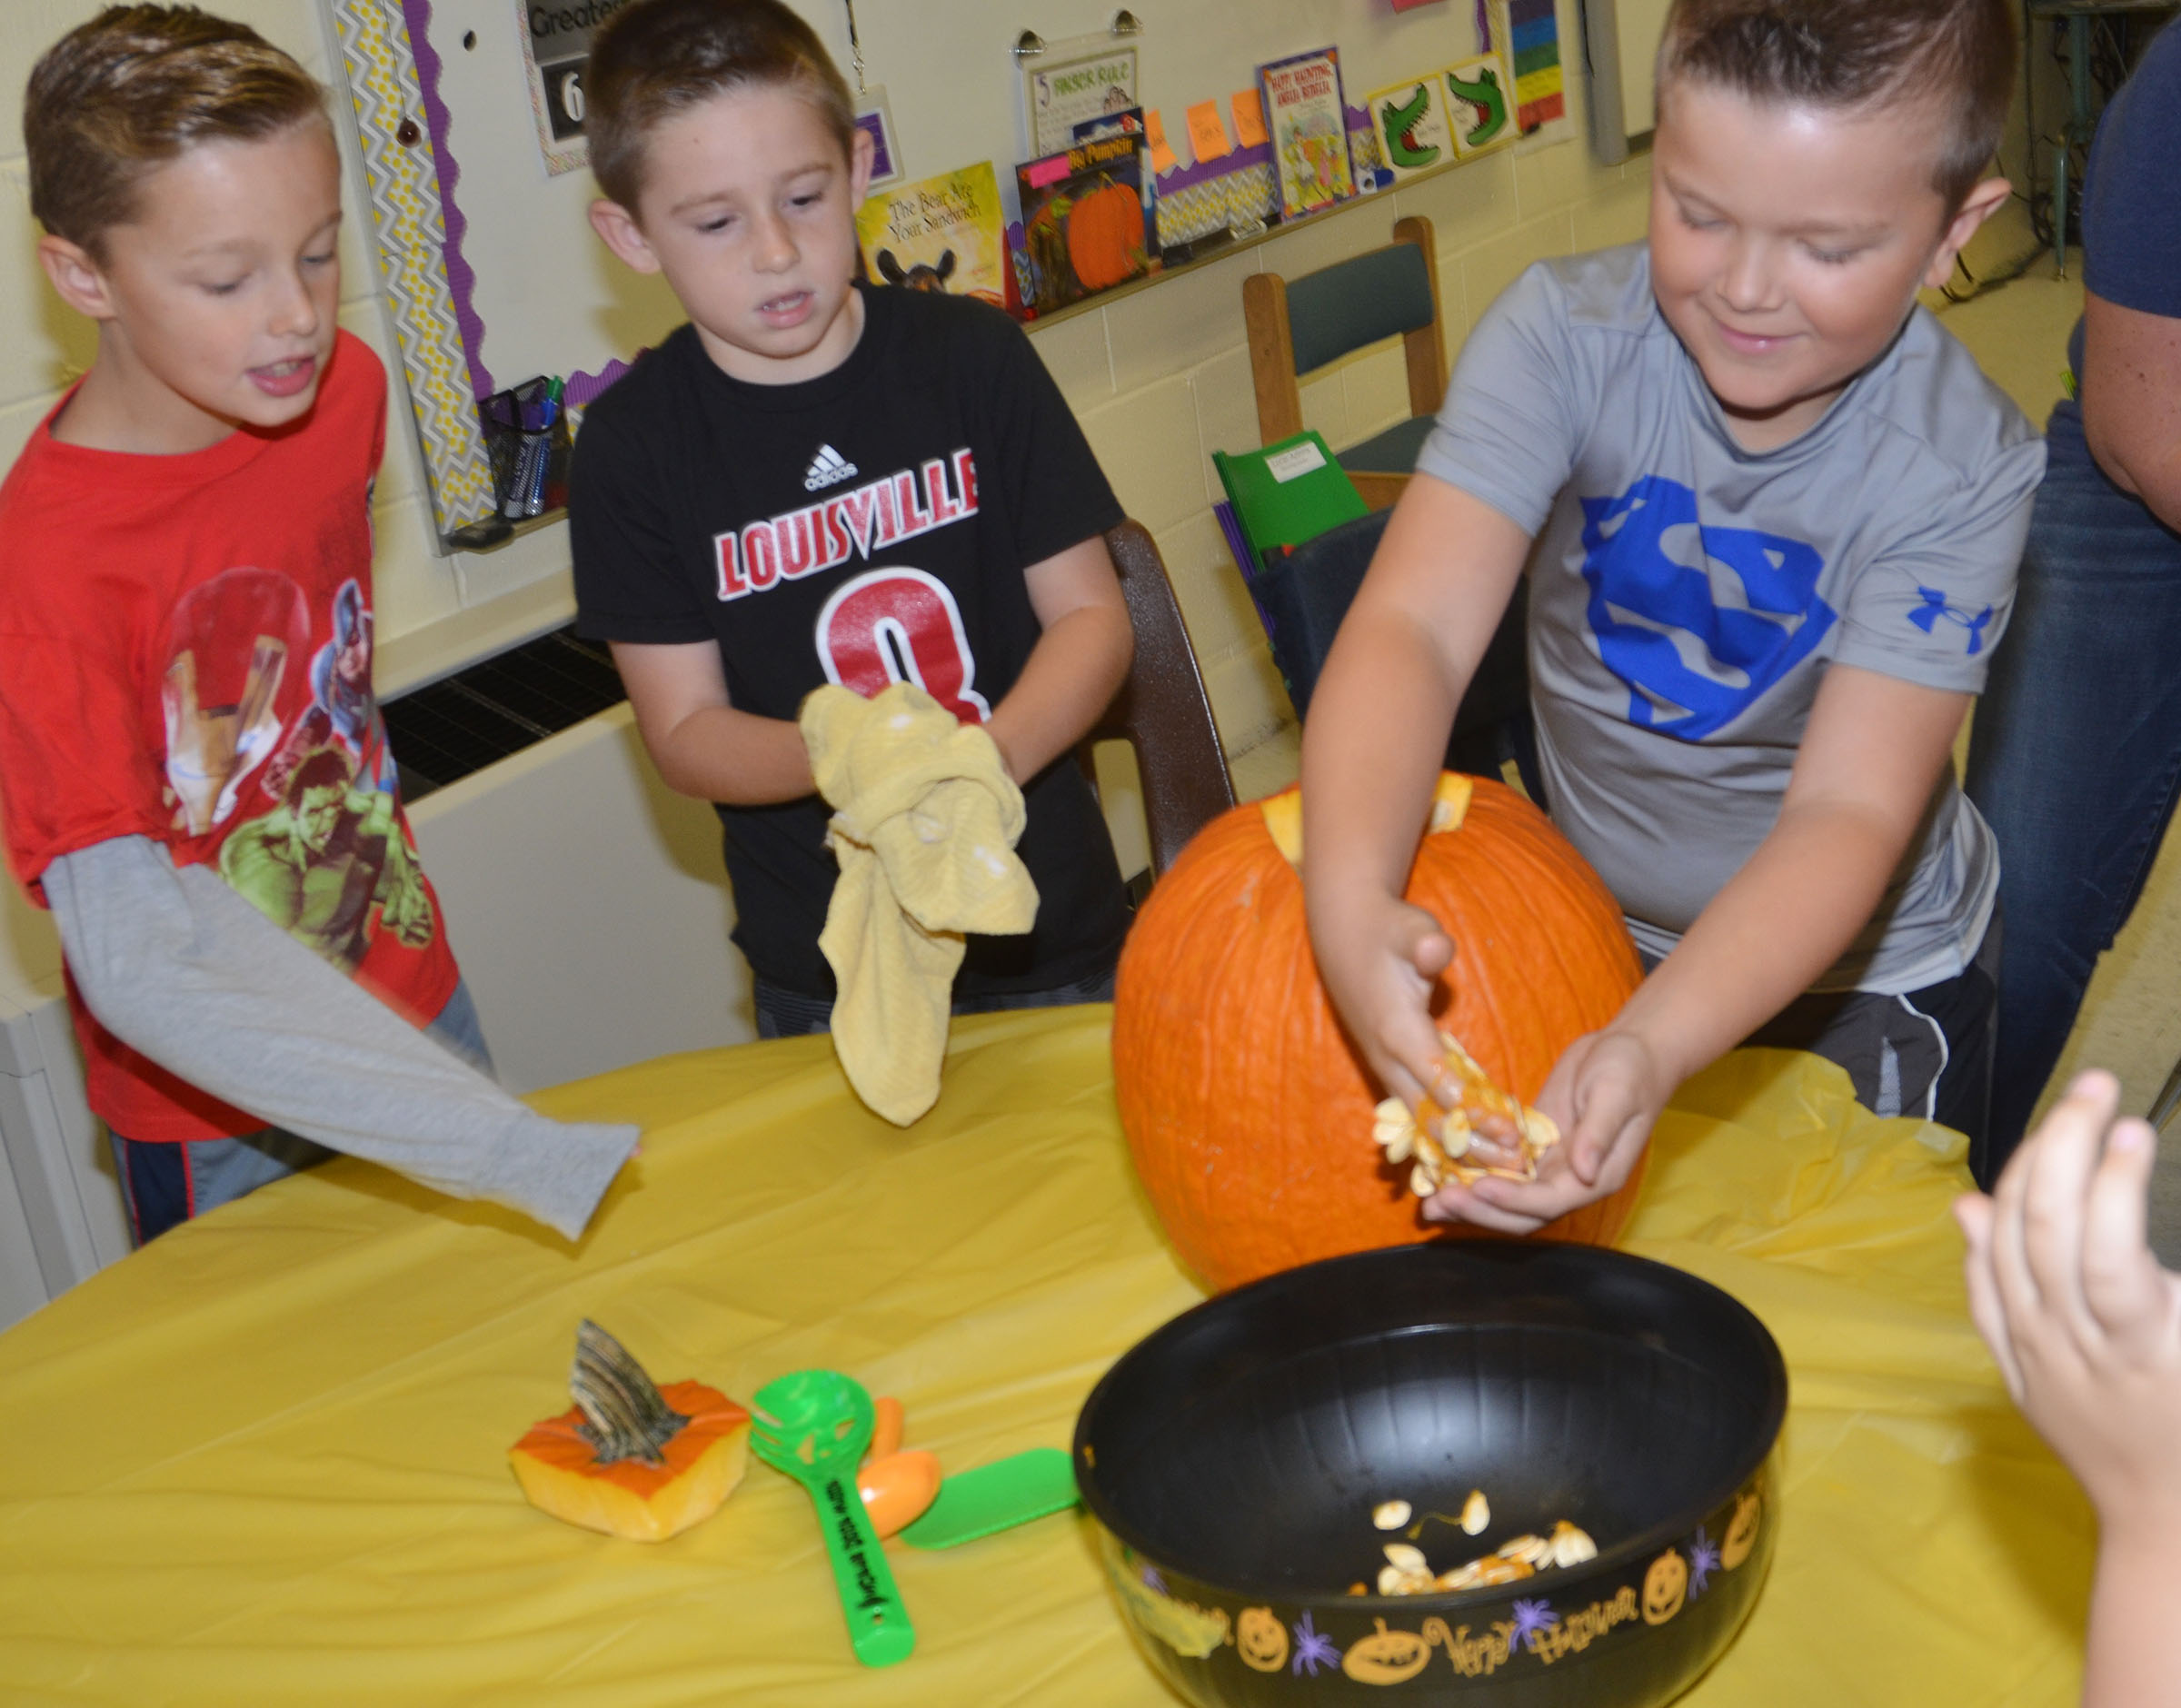 CES second-grader Cayton Lawhorn scoops the seeds out of a pumpkin as his classmates Guy Proctor, at left, and Lanigan Price watch.